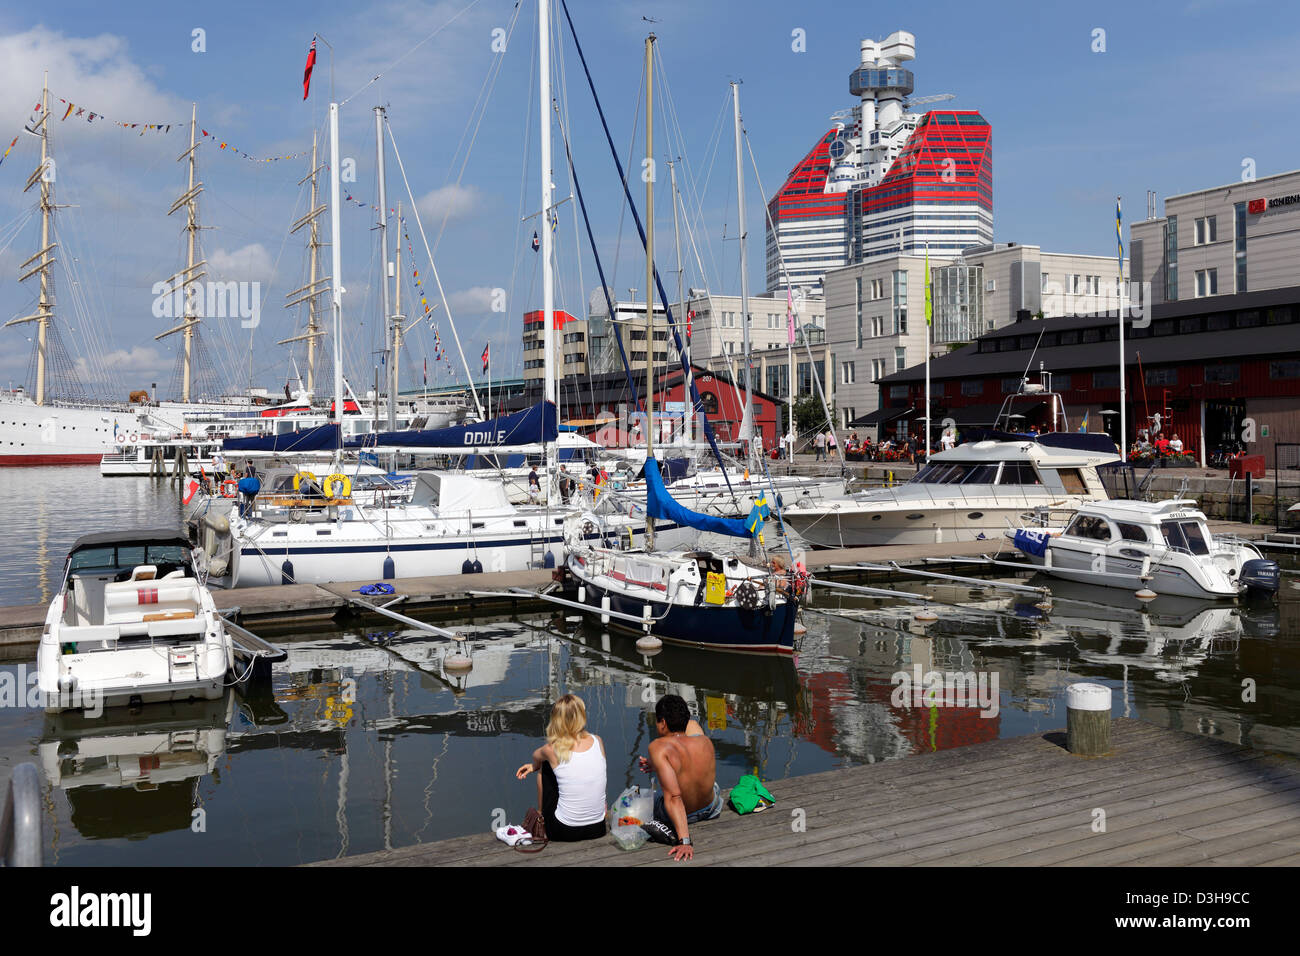 Gothenburg, Sweden, the sailing ship Viking boats in the harbor Lilla Bommen Stock Photo